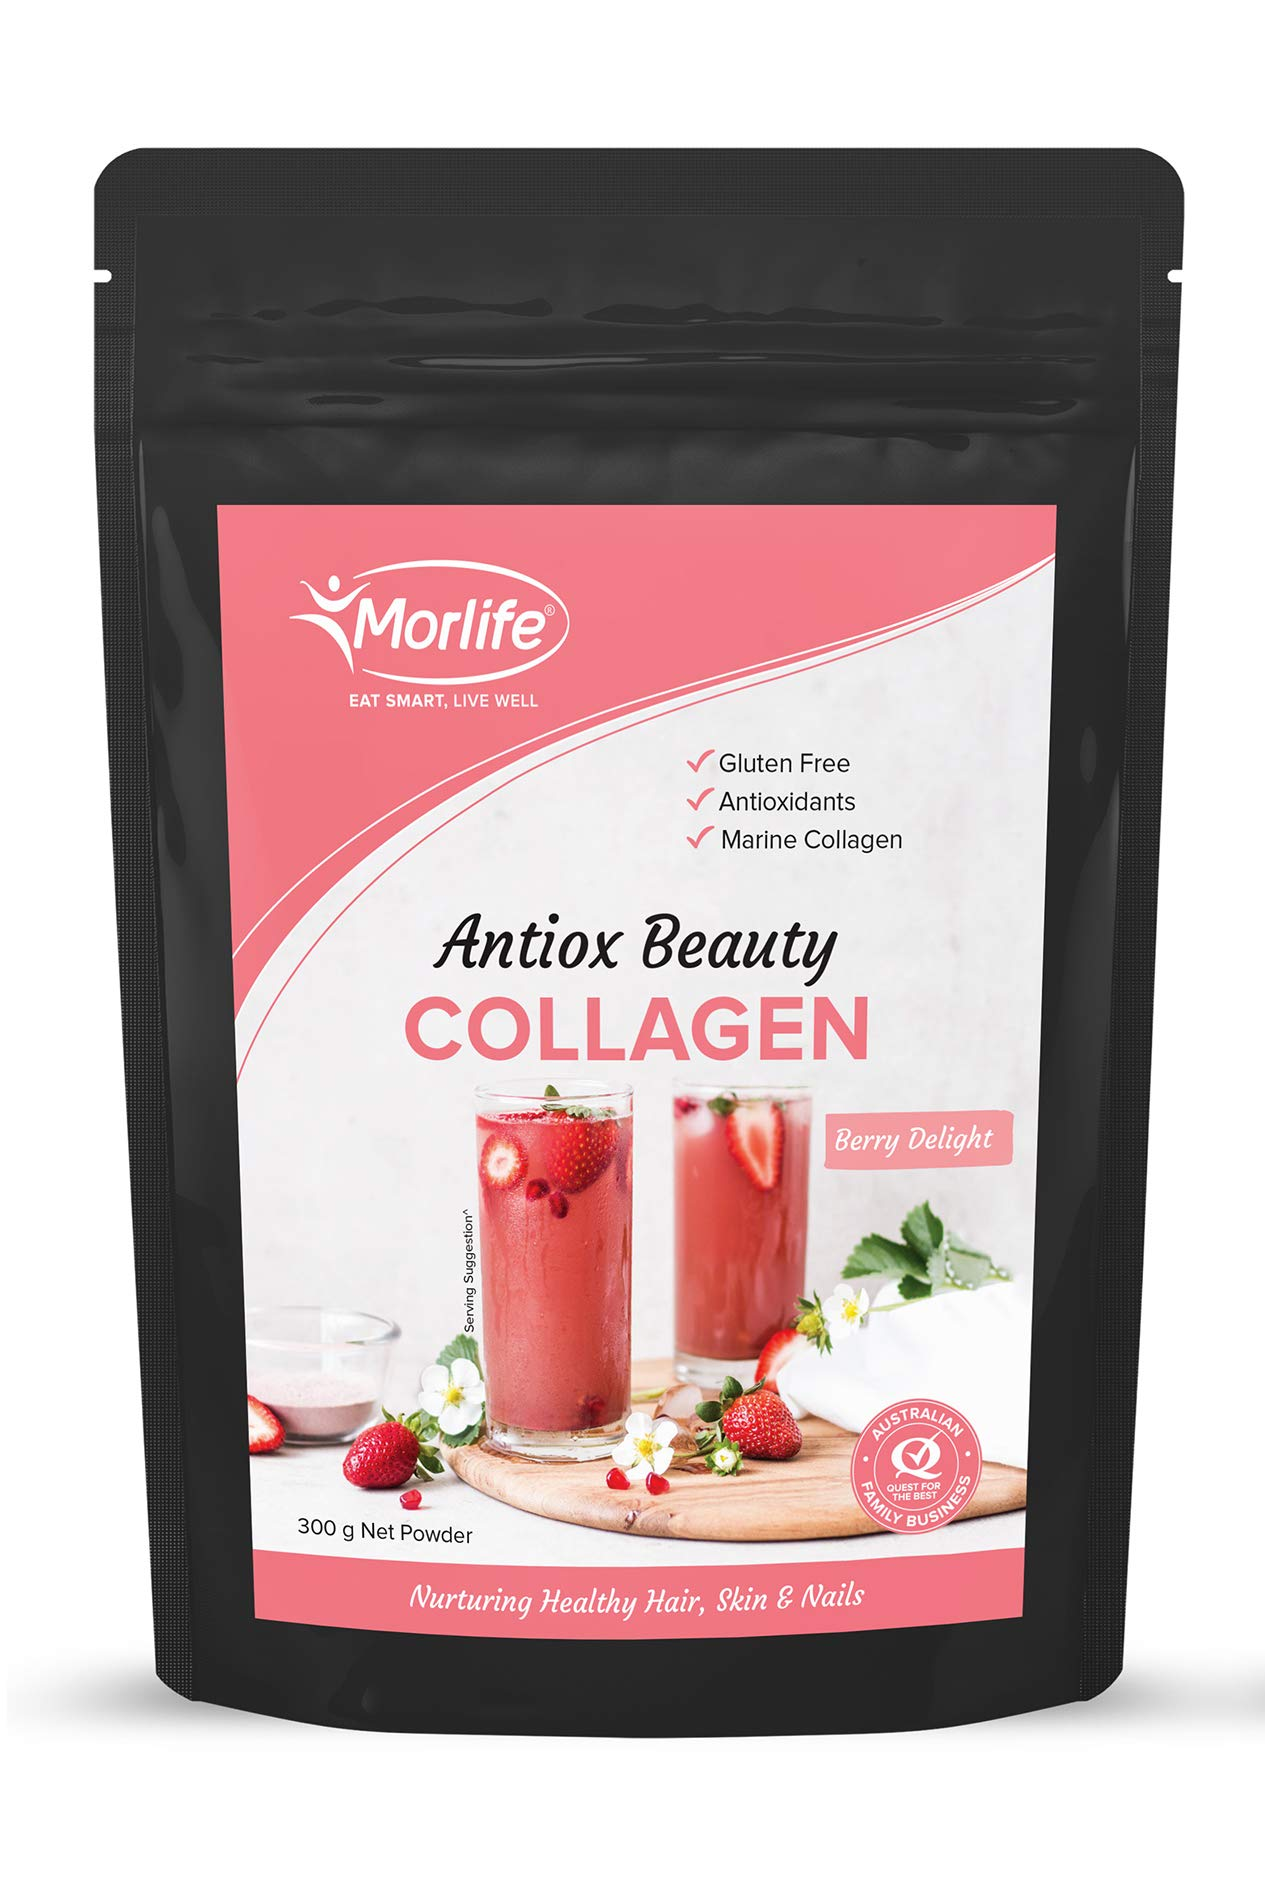 Morlife Antiox Beauty Collagen Powder 300g - Berry Delight | Skin Supplements | Marine Collagen with Antioxidants | Hydrolyzed Collagen Supplements | Super Collagen Hydrolysate Peptides | 27 Servings by Morlife